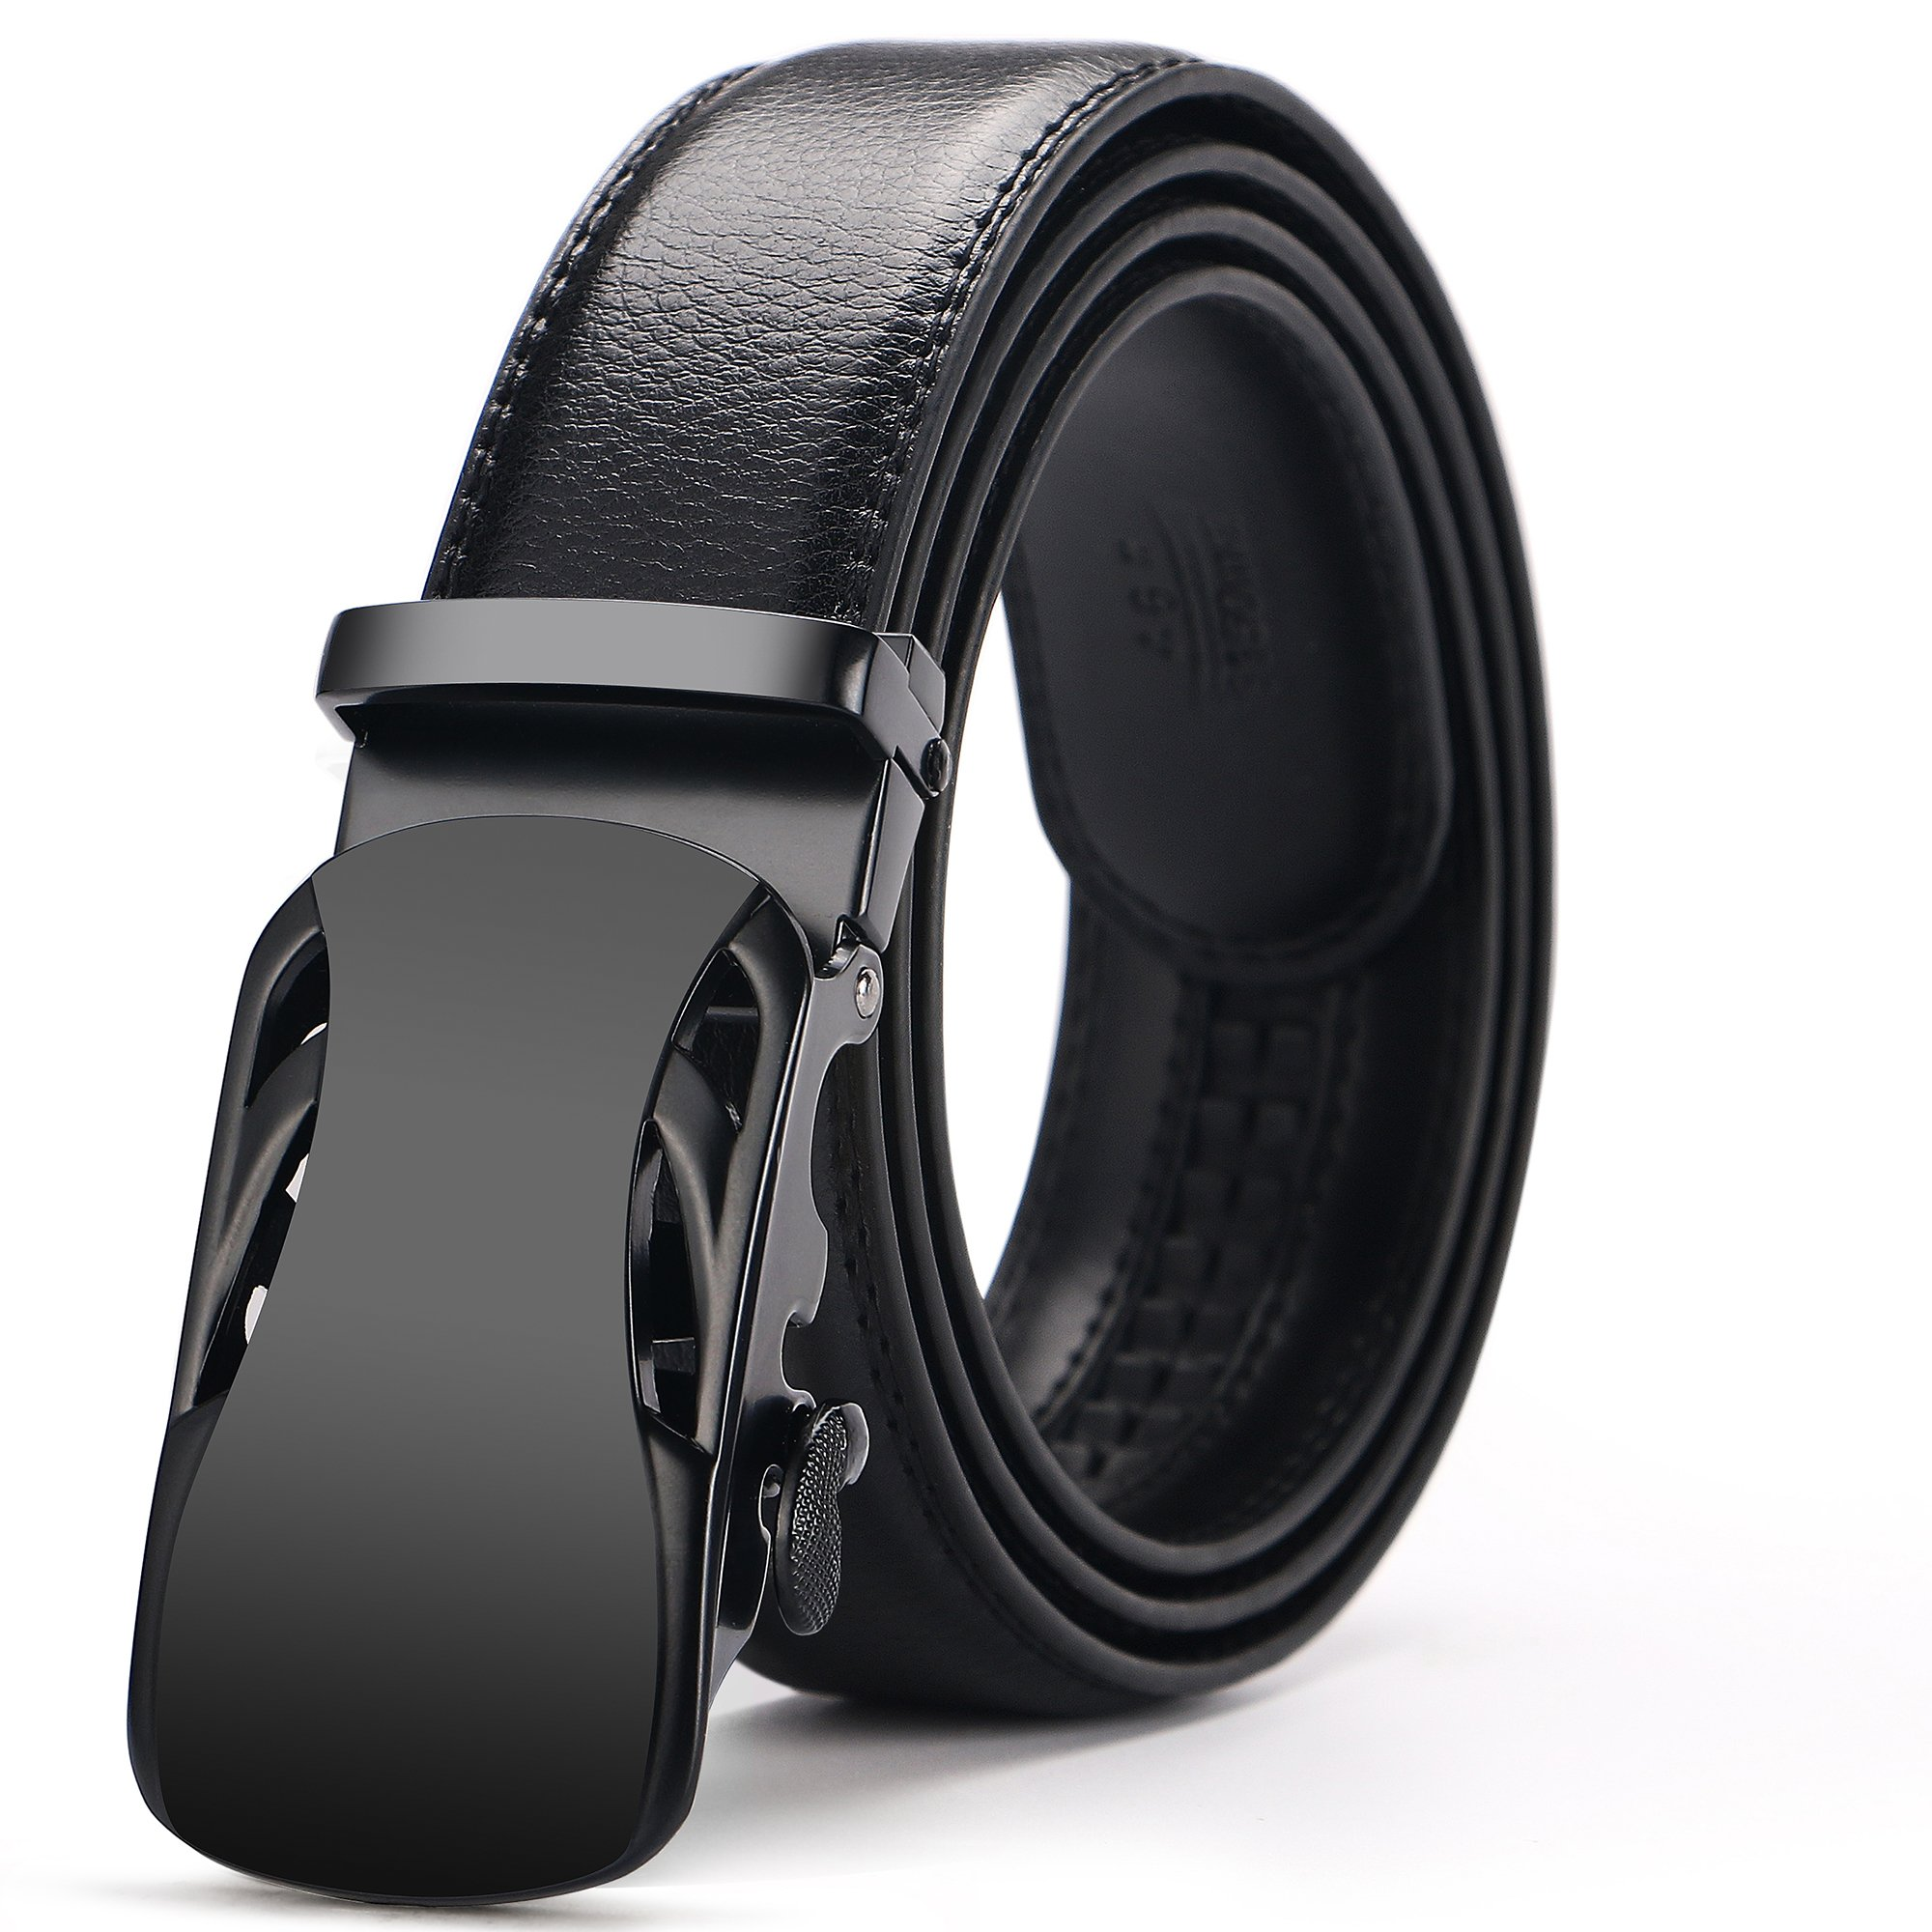 Iztor Men's Automatic Buckle Ratchet Leather Dress Belt 35mm Wide 1 3/8'' With Gift Box for from 20'' to 43'' Waist